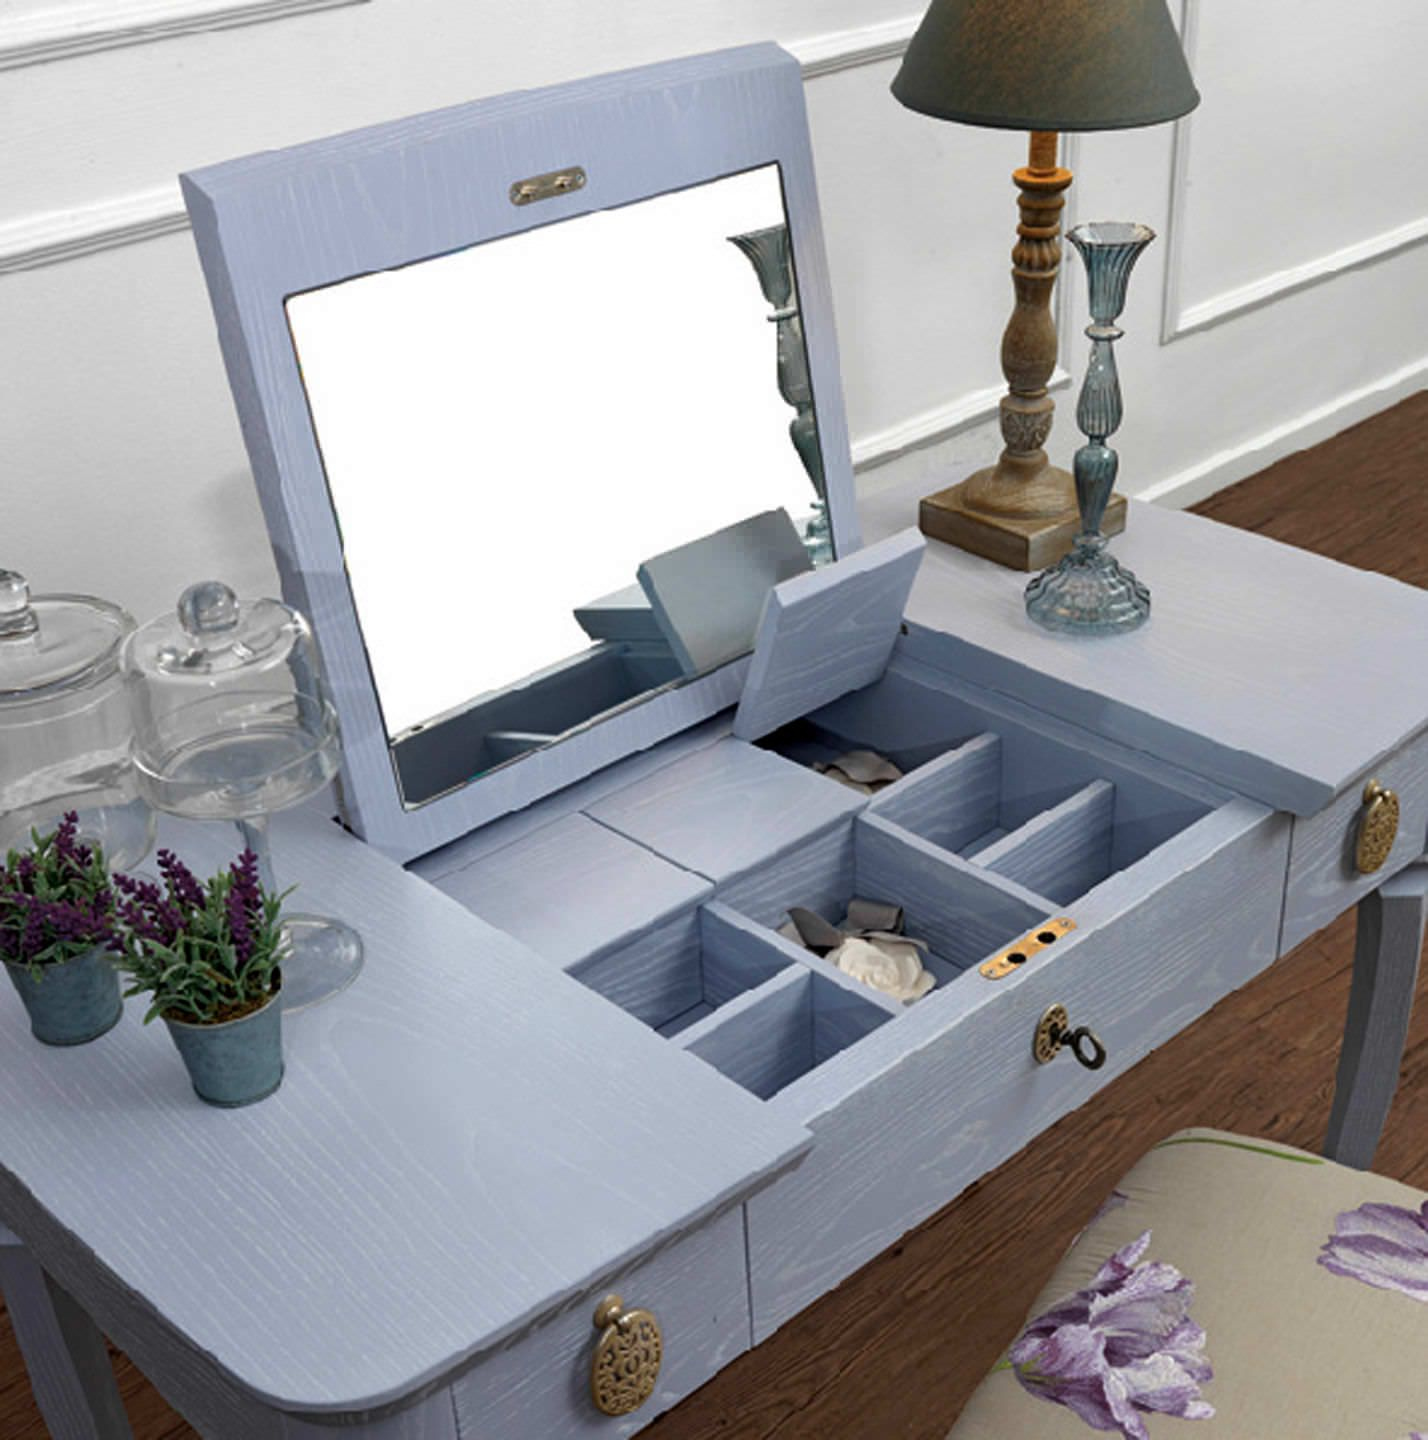 Modern bedroom dressing table with mirror - Traditional Dressing Table Gina By Joe Gentile Galimberti Nino